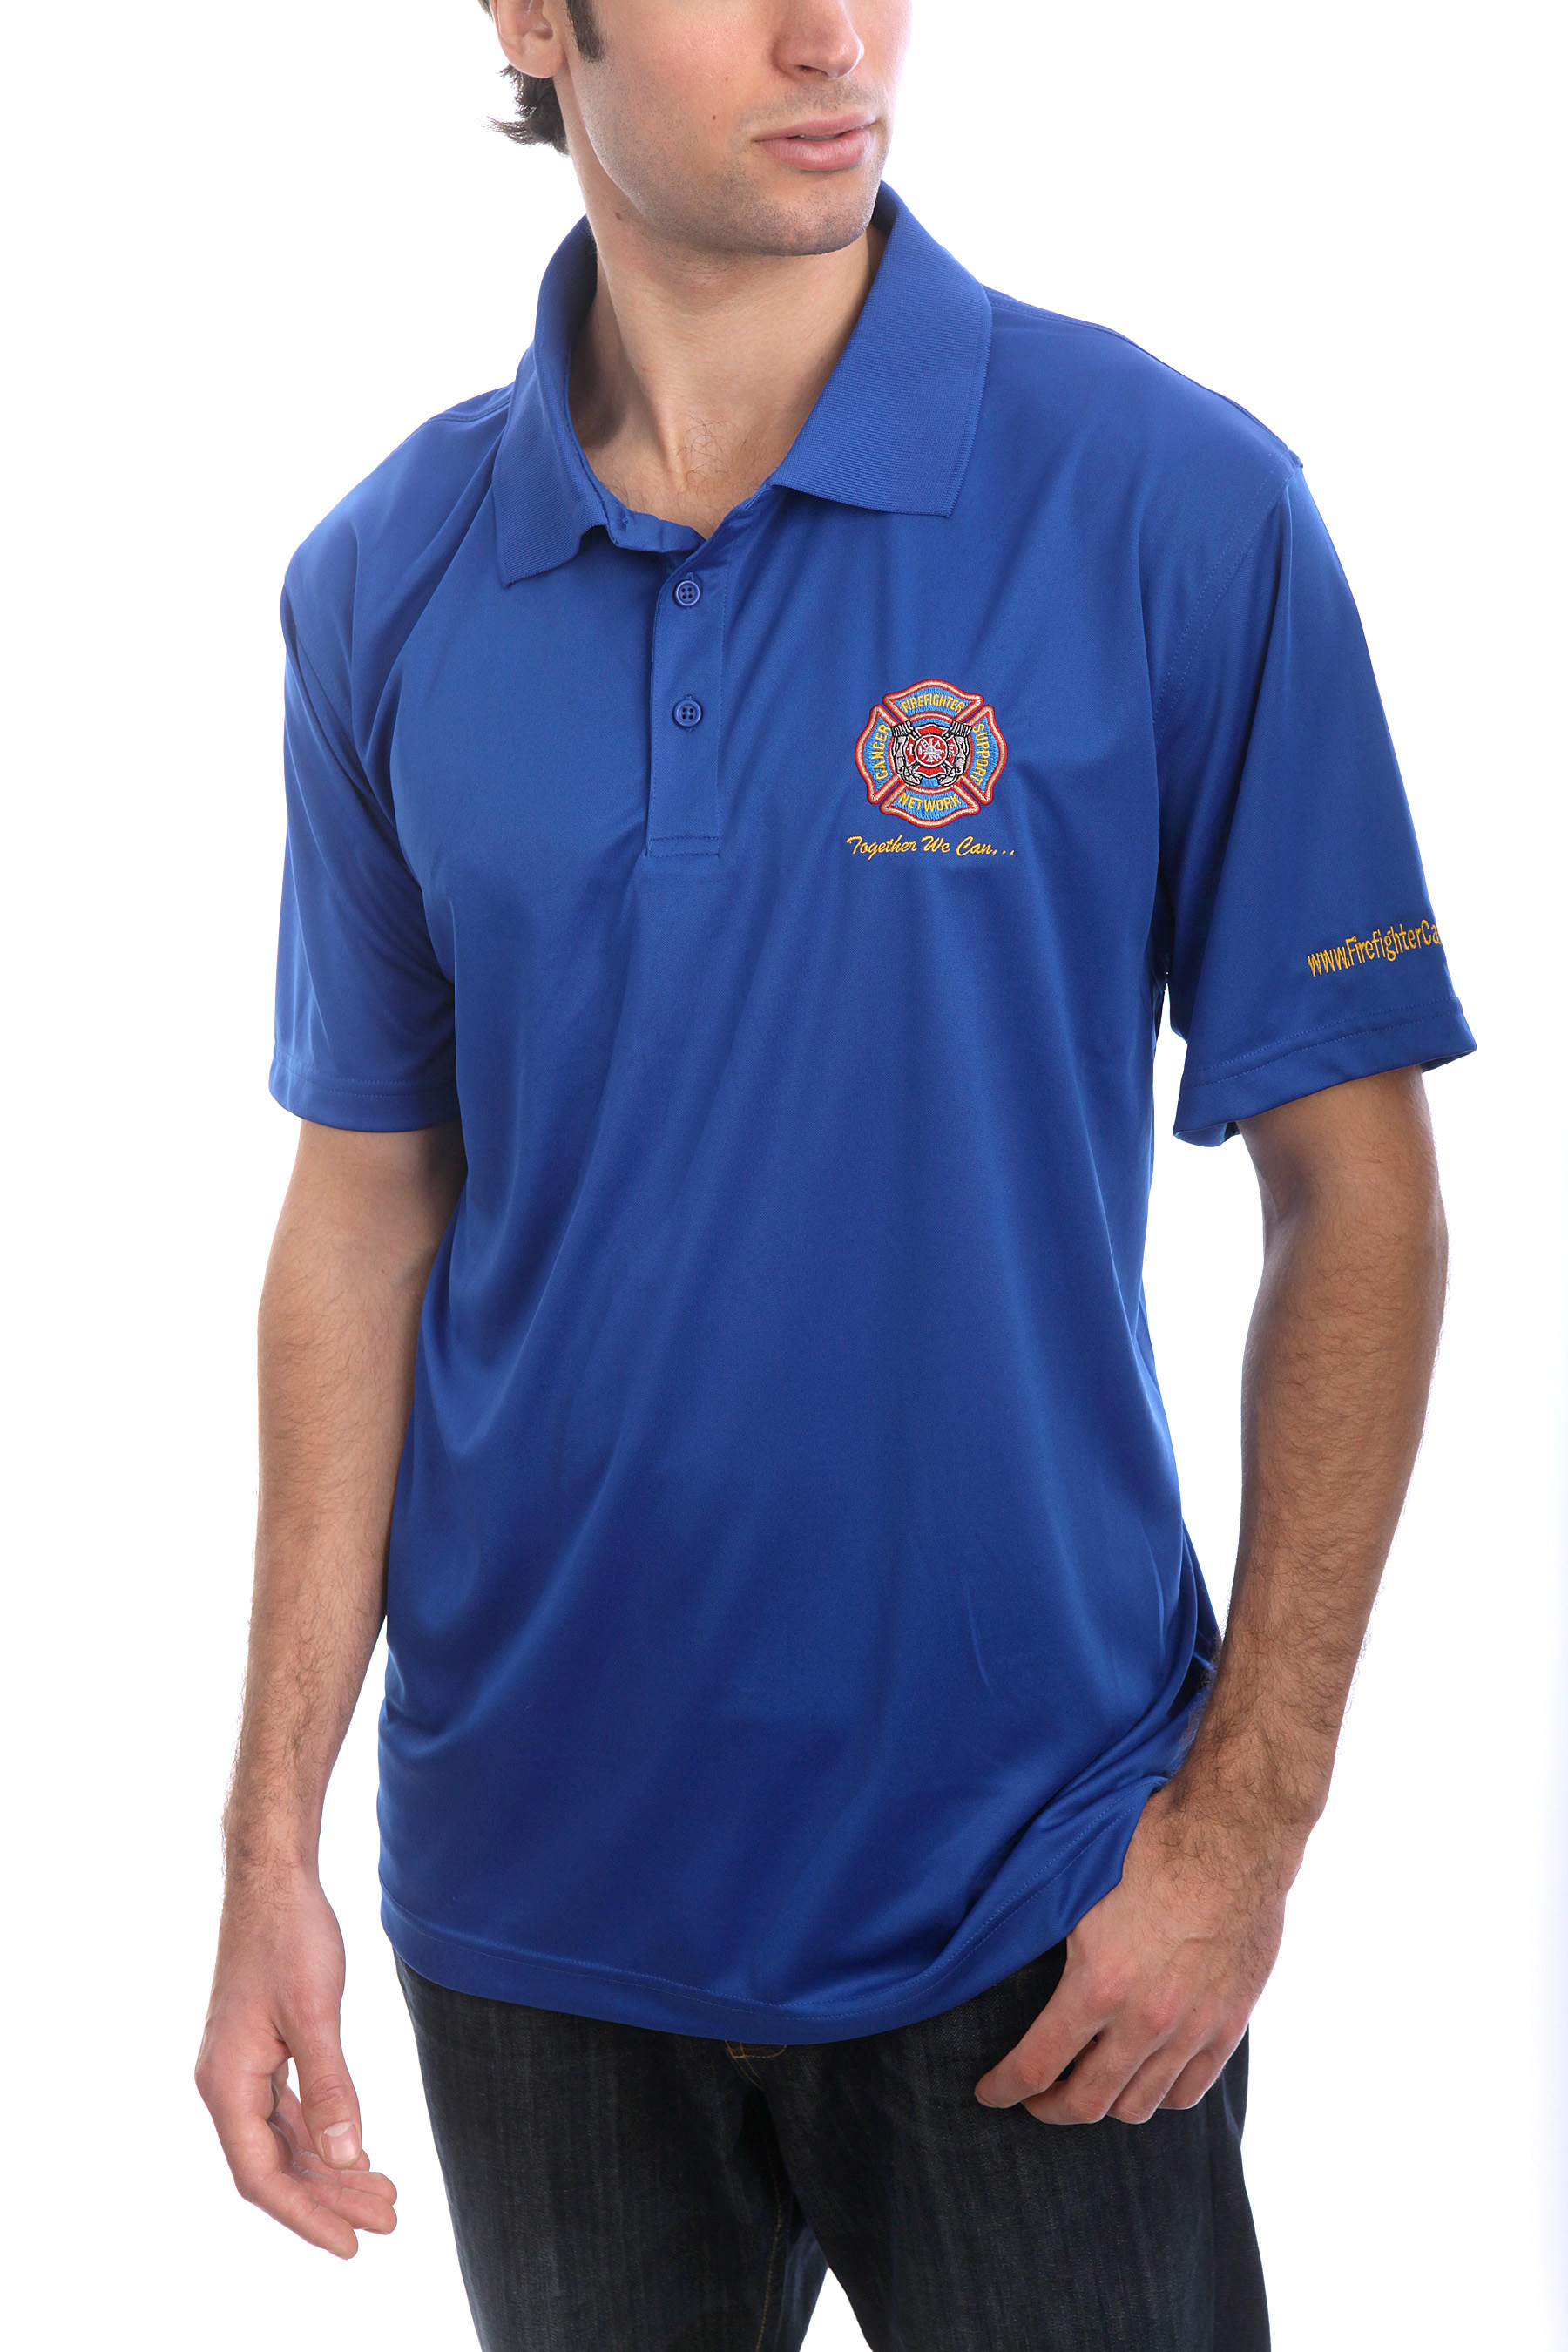 FCSN Men's Golf Shirt - Royal Blue